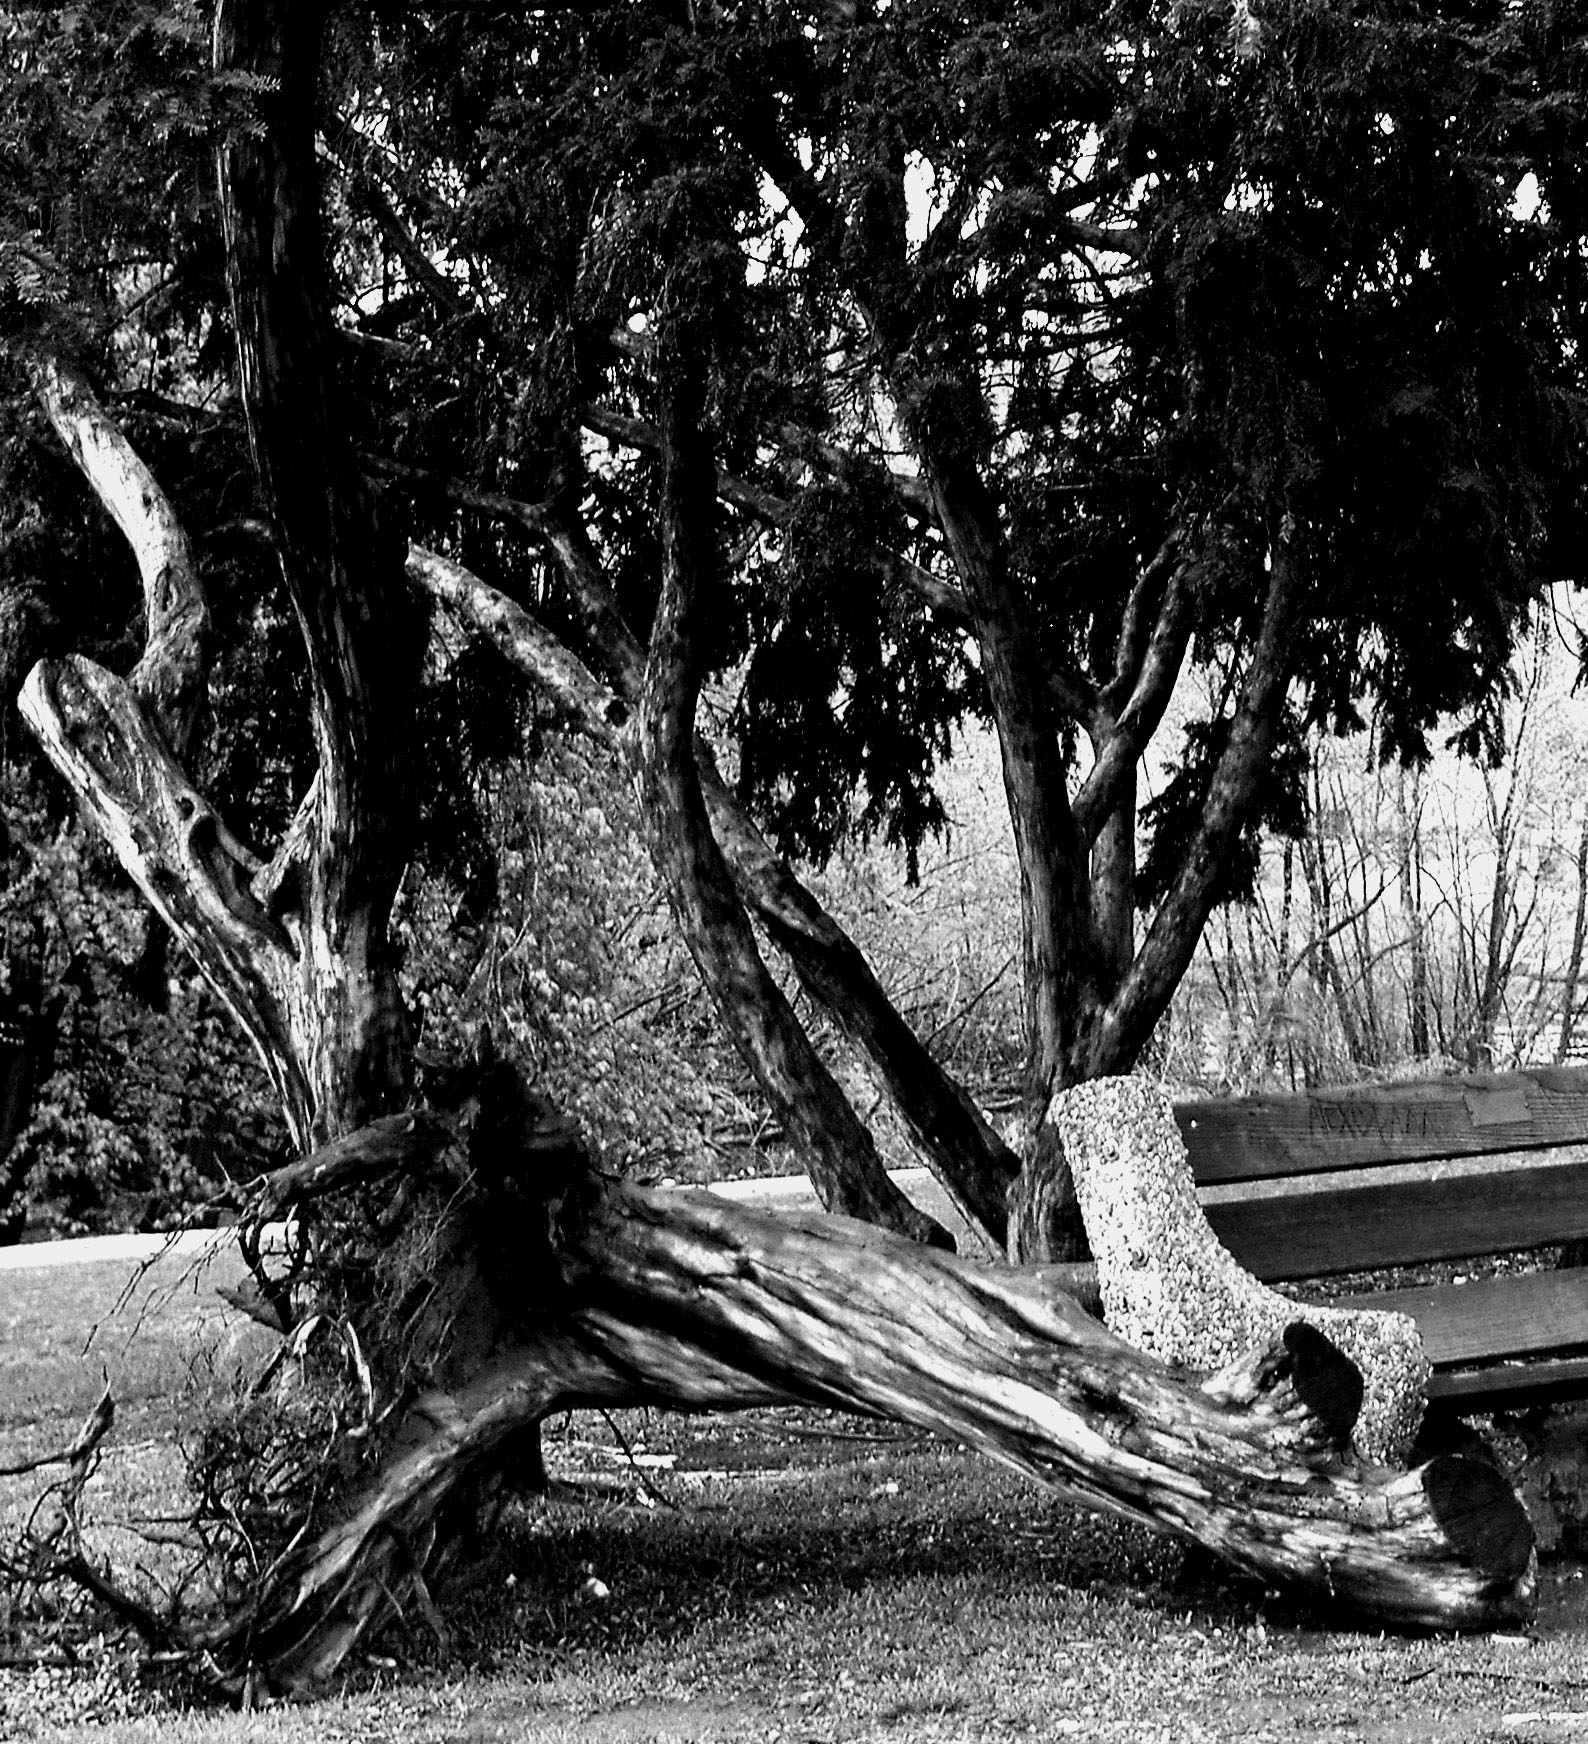 Black & White Storm Damaged Tree In Fairmount Park Philadelphia